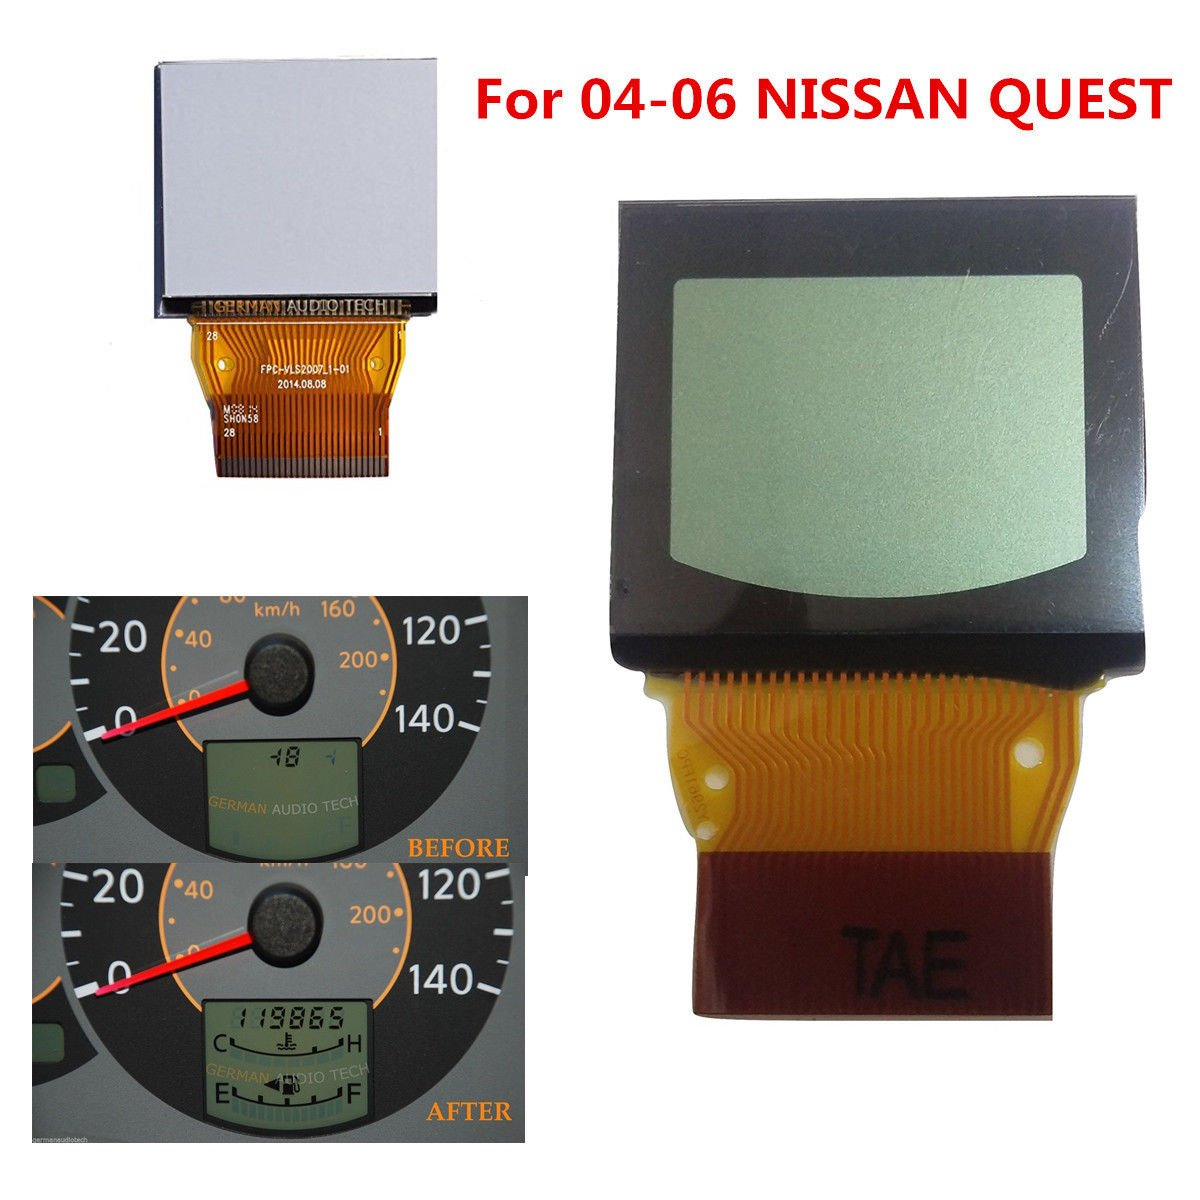 NEW LCD DISPLAY FOR NISSAN QUEST SPEEDOMETER INSTRUMENT CLUSTER 2004 2005 2006 manhong